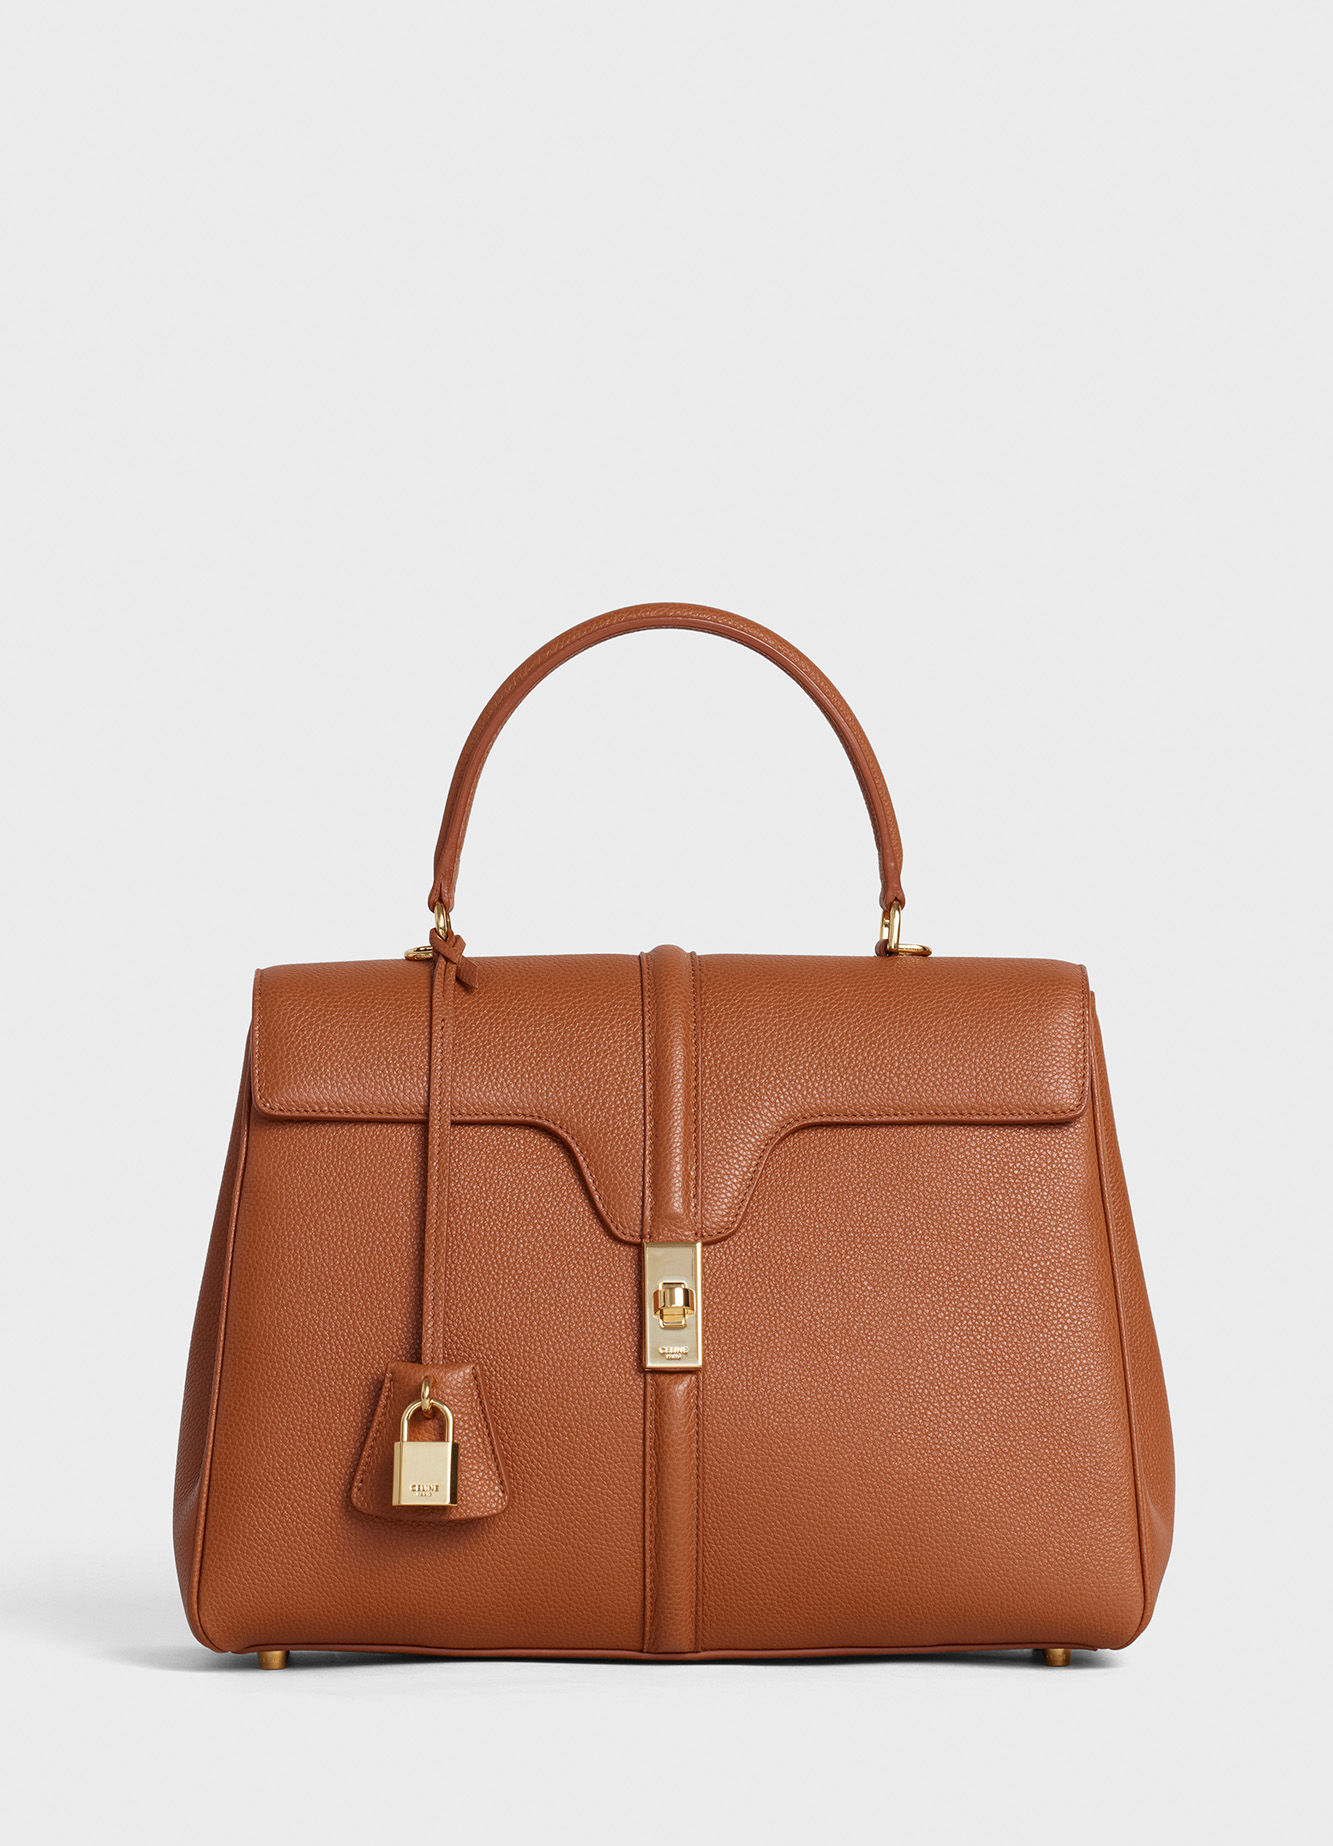 CELINE MEDIUM 16 BAG IN SATINATED CALFSKIN 187373 TAN